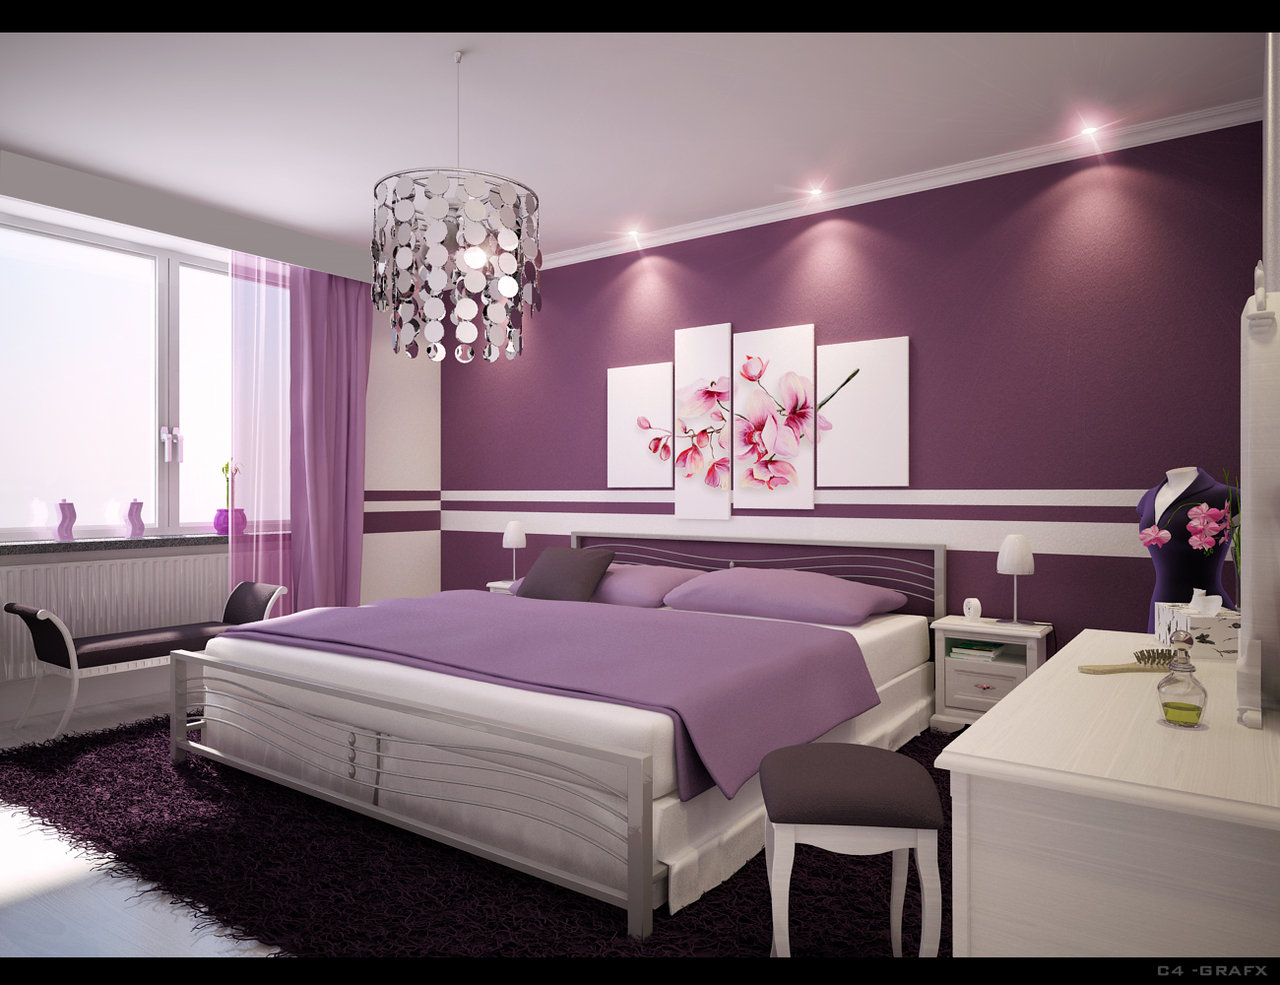 Fabulous Bedroom Interior Design Ideas 1280 x 985 · 201 kB · jpeg